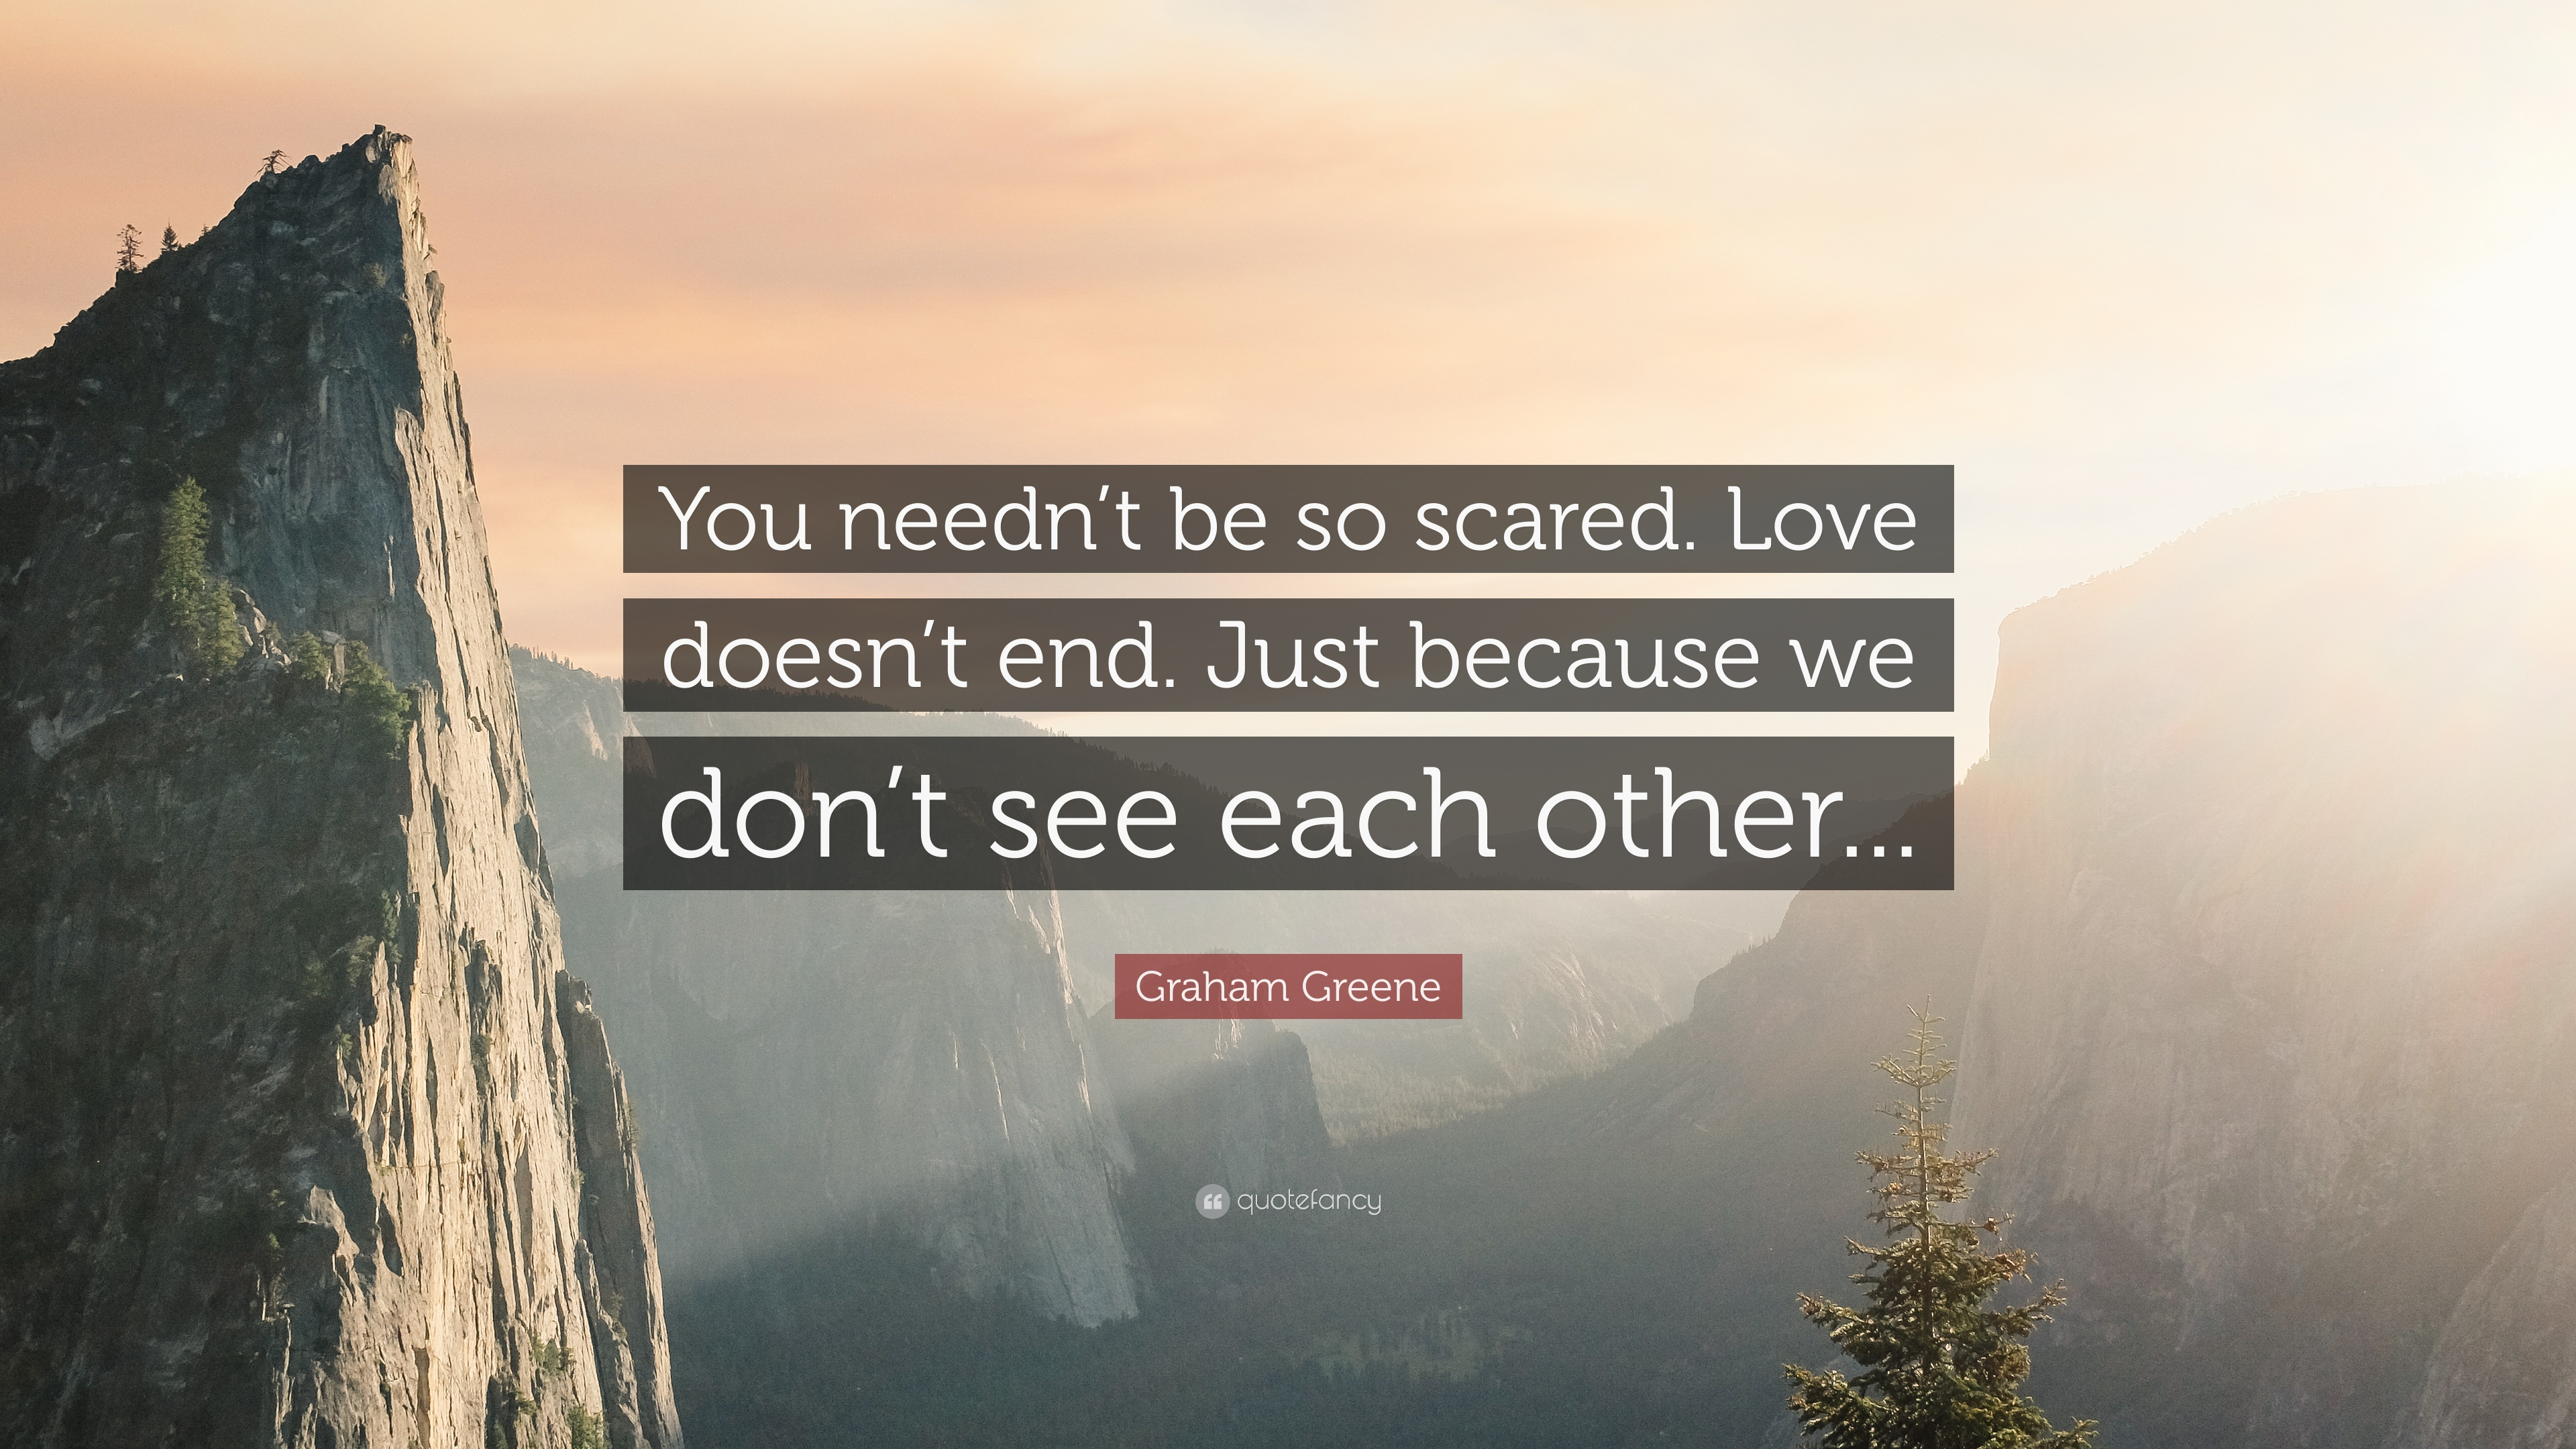 Graham Greene Quote You Neednt Be So Scared Love Doesnt End